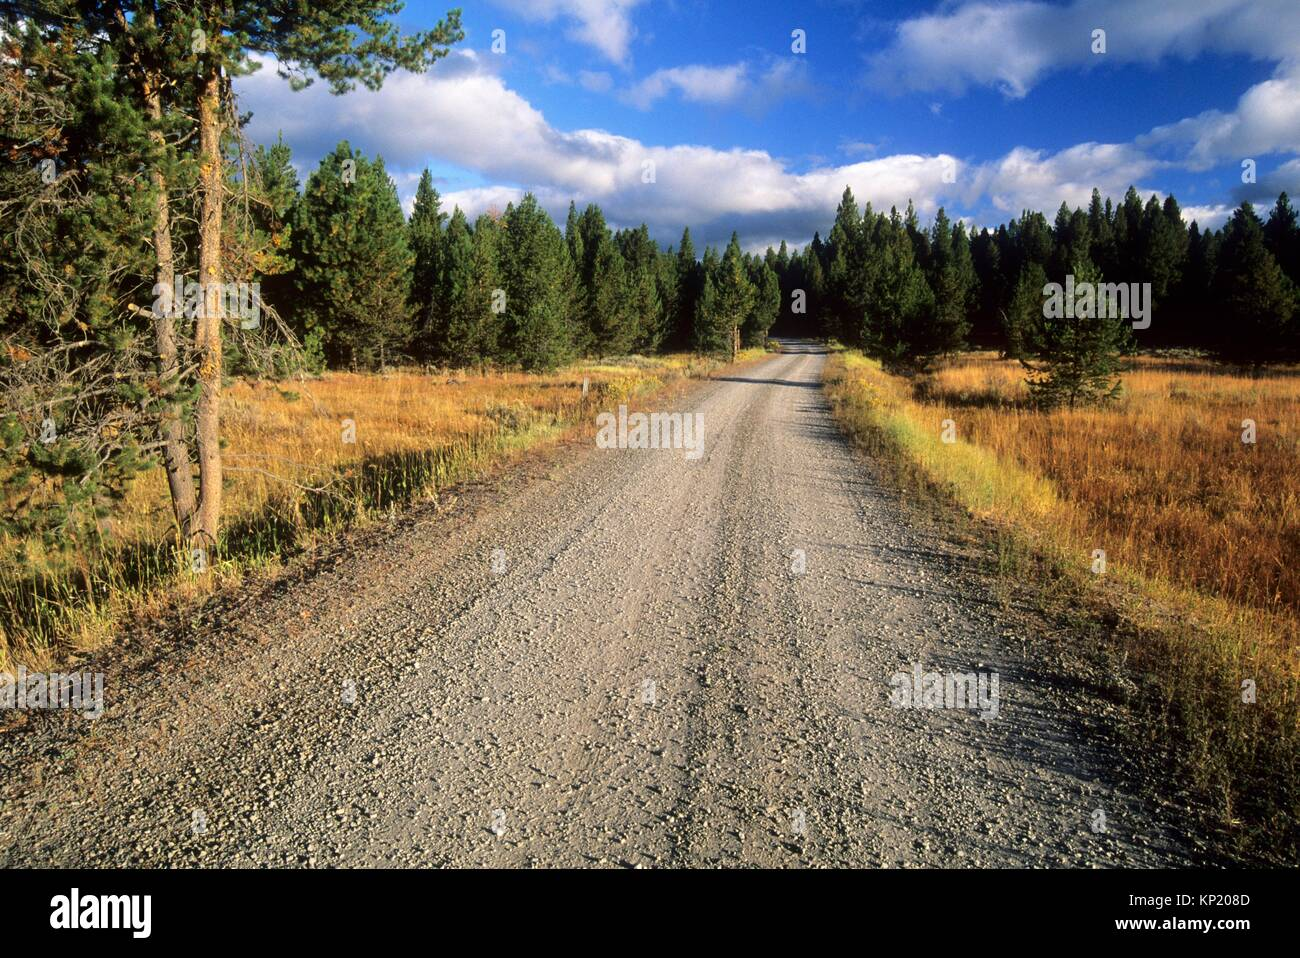 FR1643 by Logan Valley, Malheur National Forest, Oregon. - Stock Image